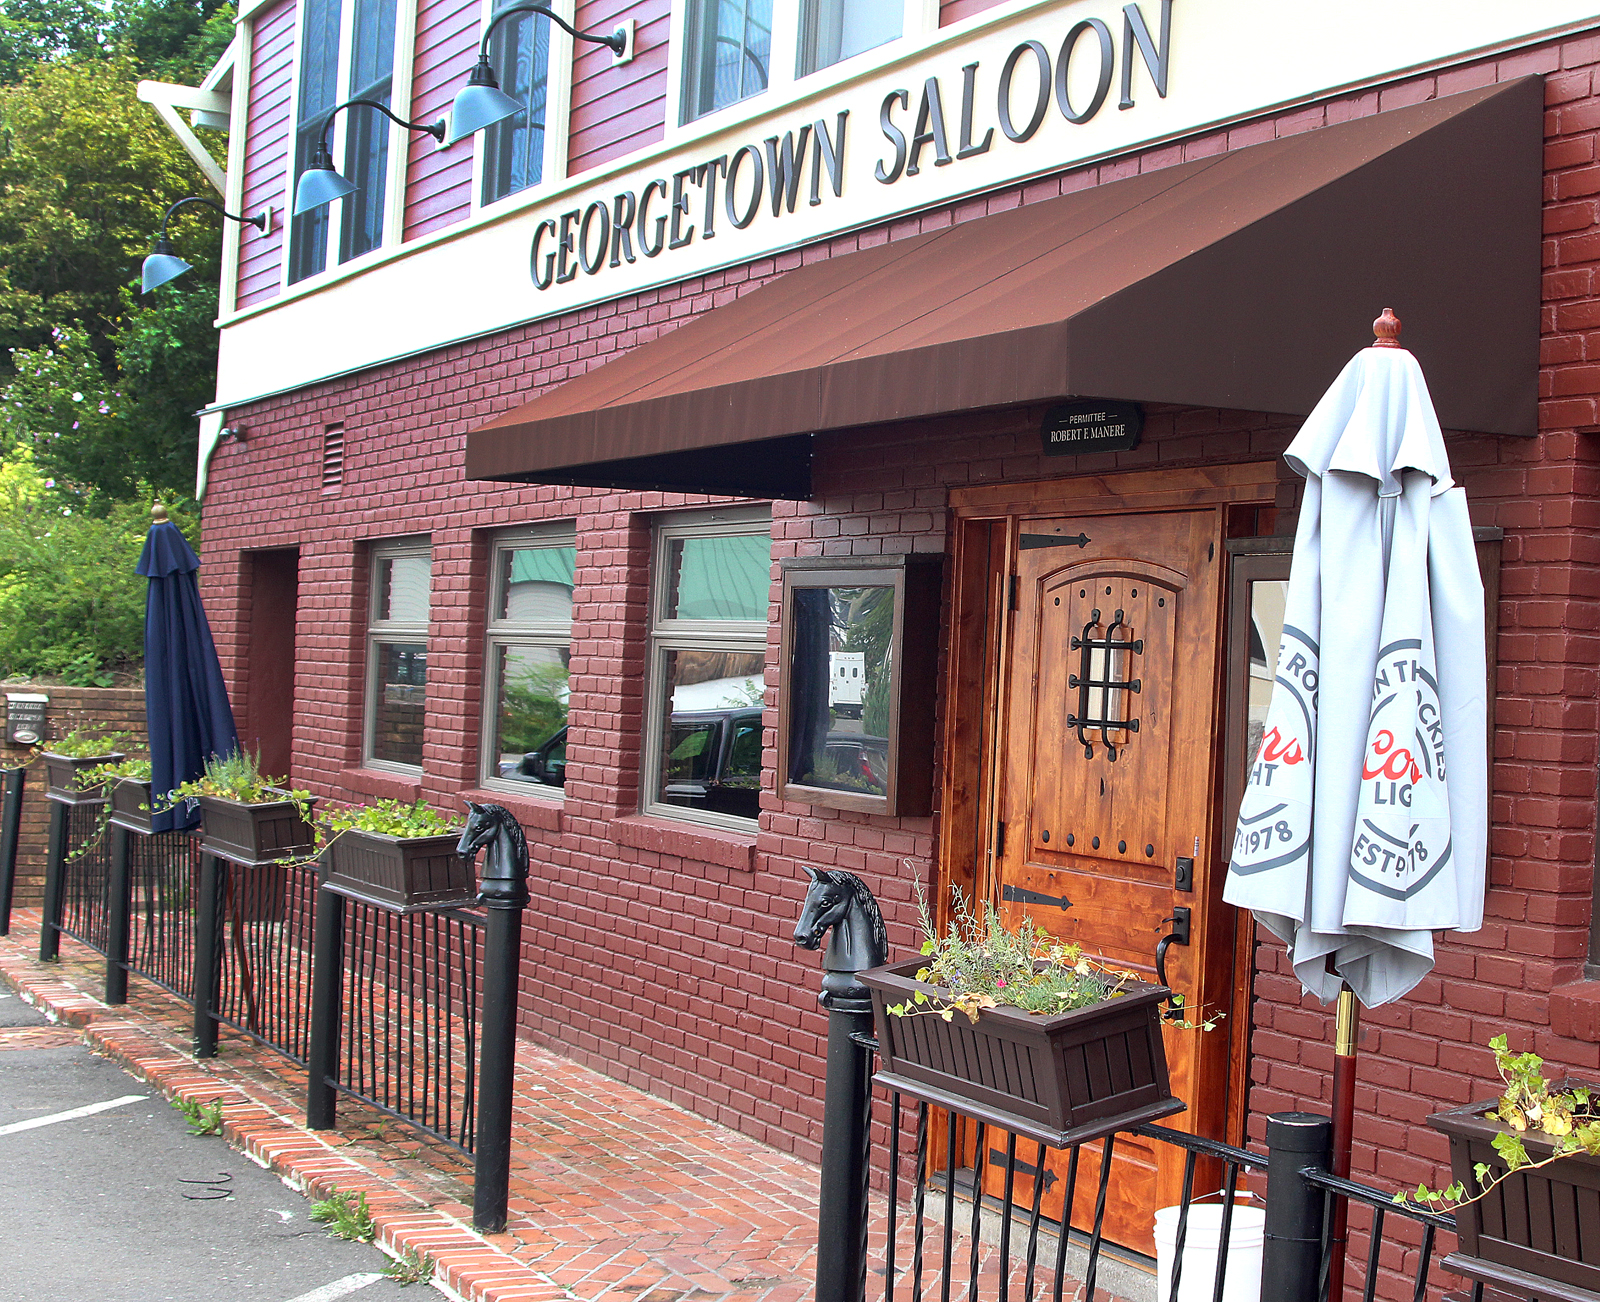 Georgetown Saloon closes its doors again